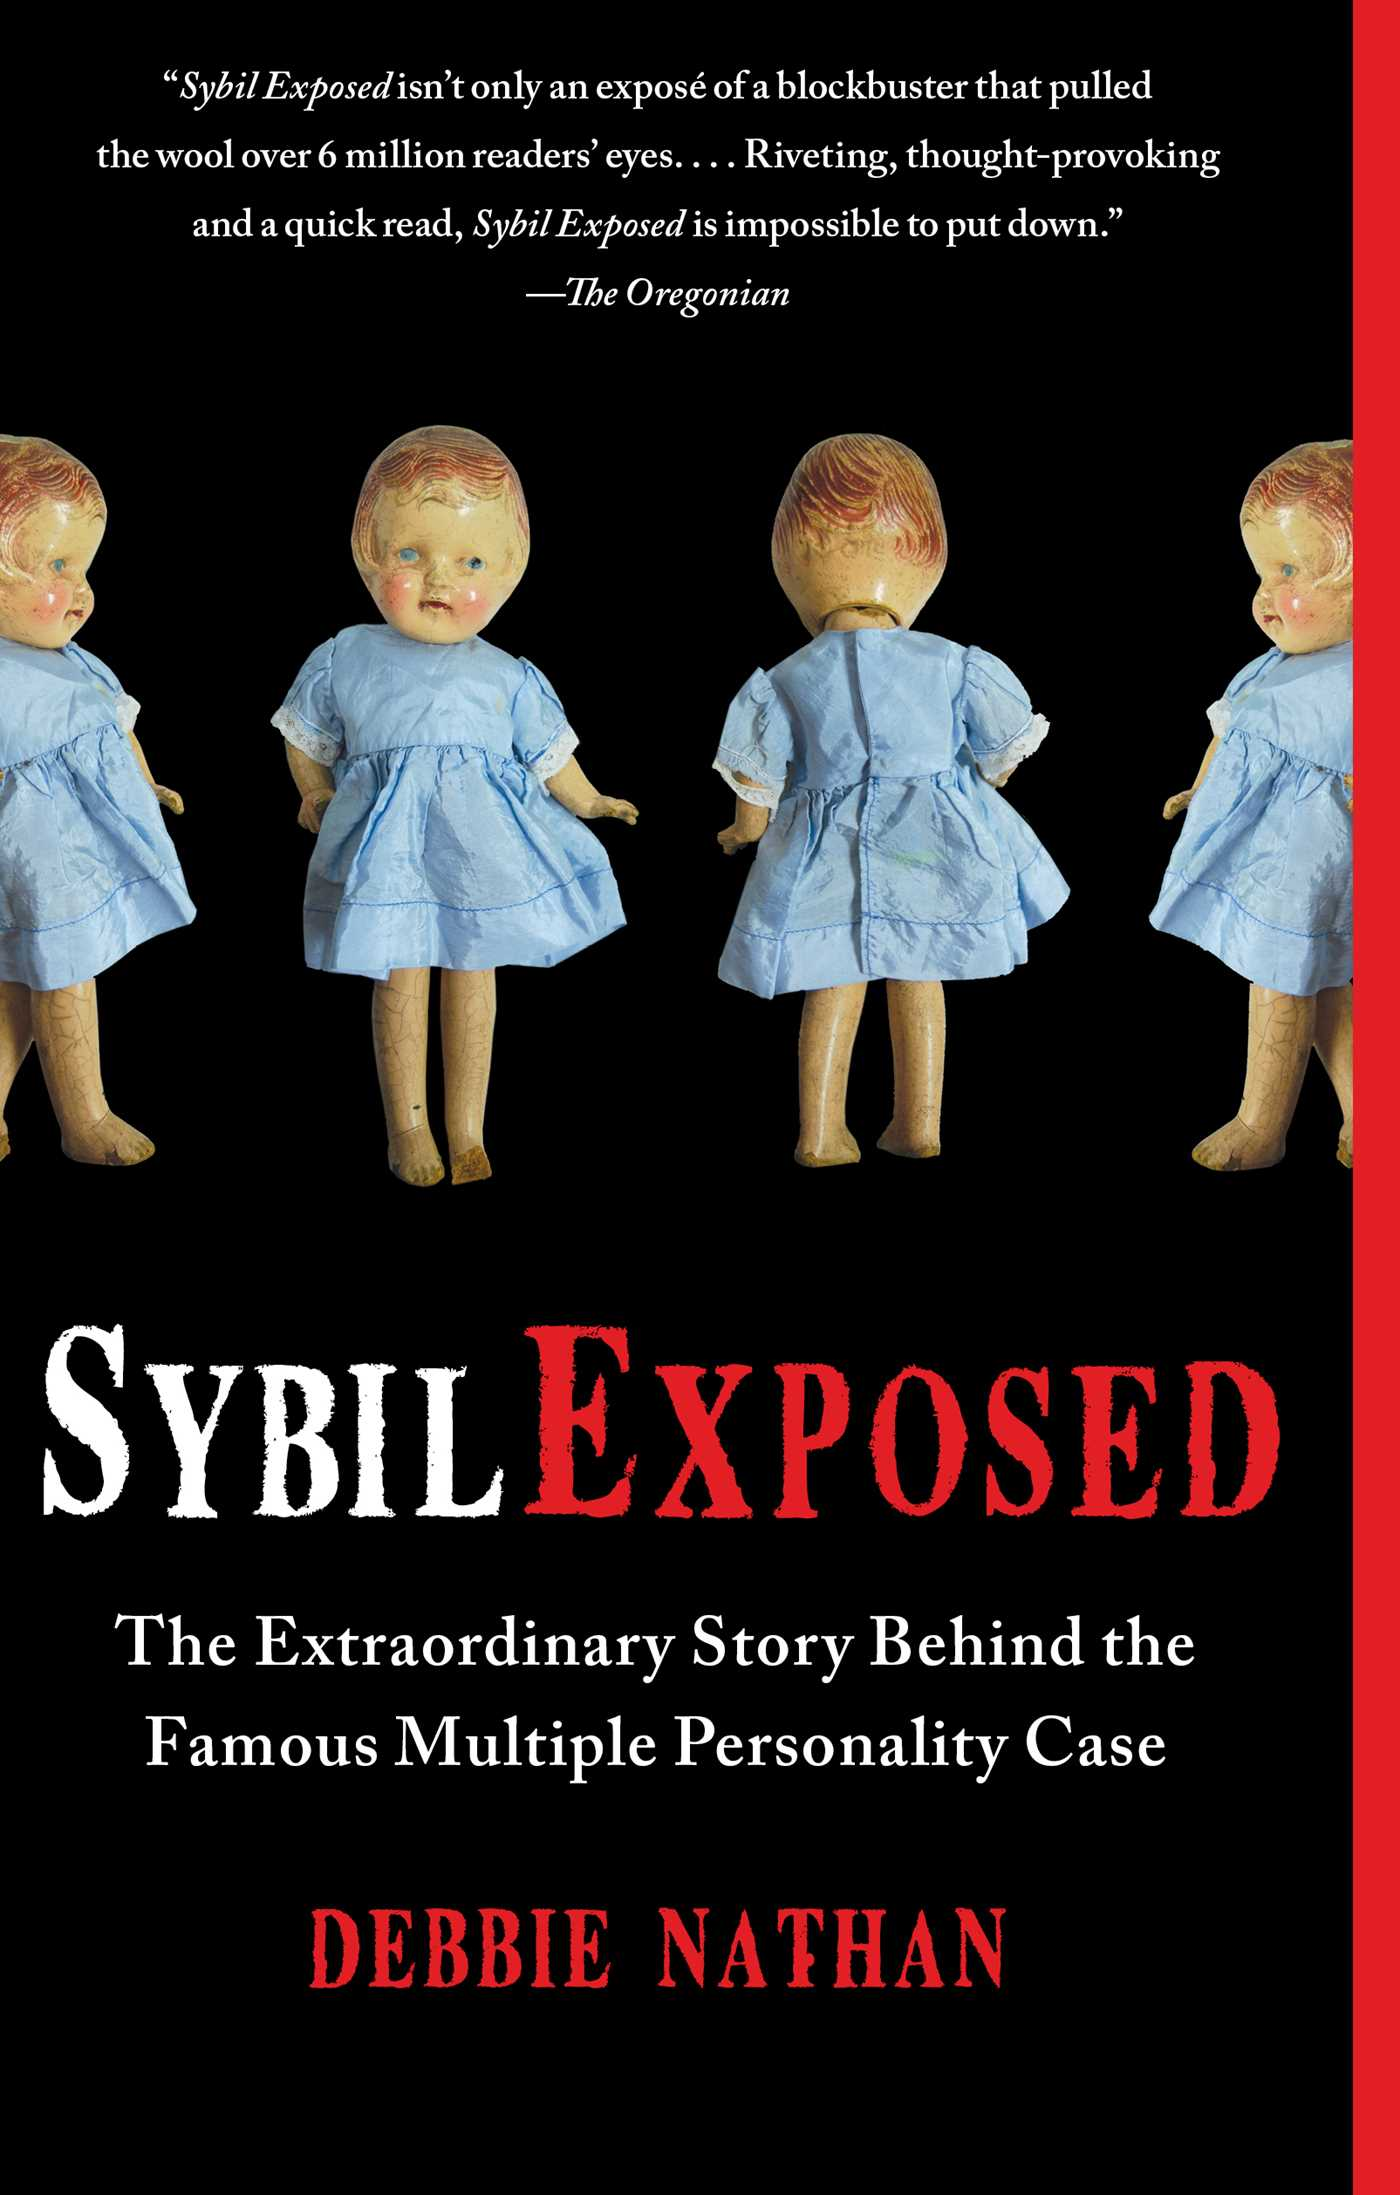 Sybil-exposed-9781439168295_hr